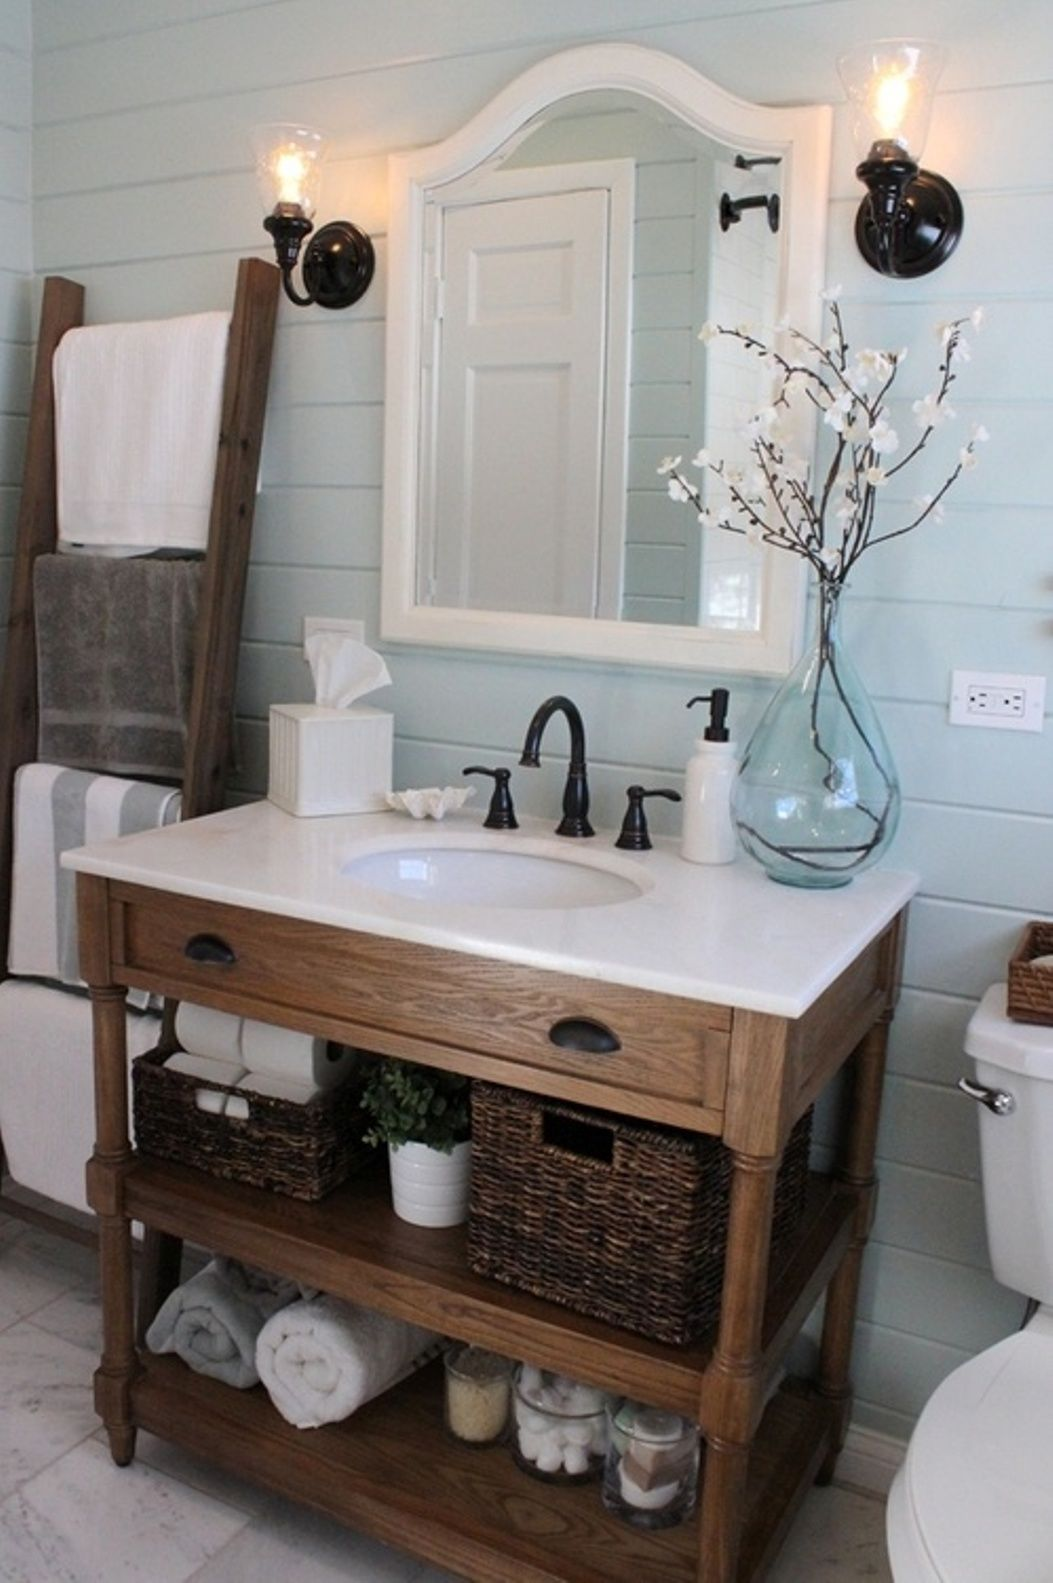 17 inspiring rustic bathroom decor ideas for cozy home for Bathroom decor styles